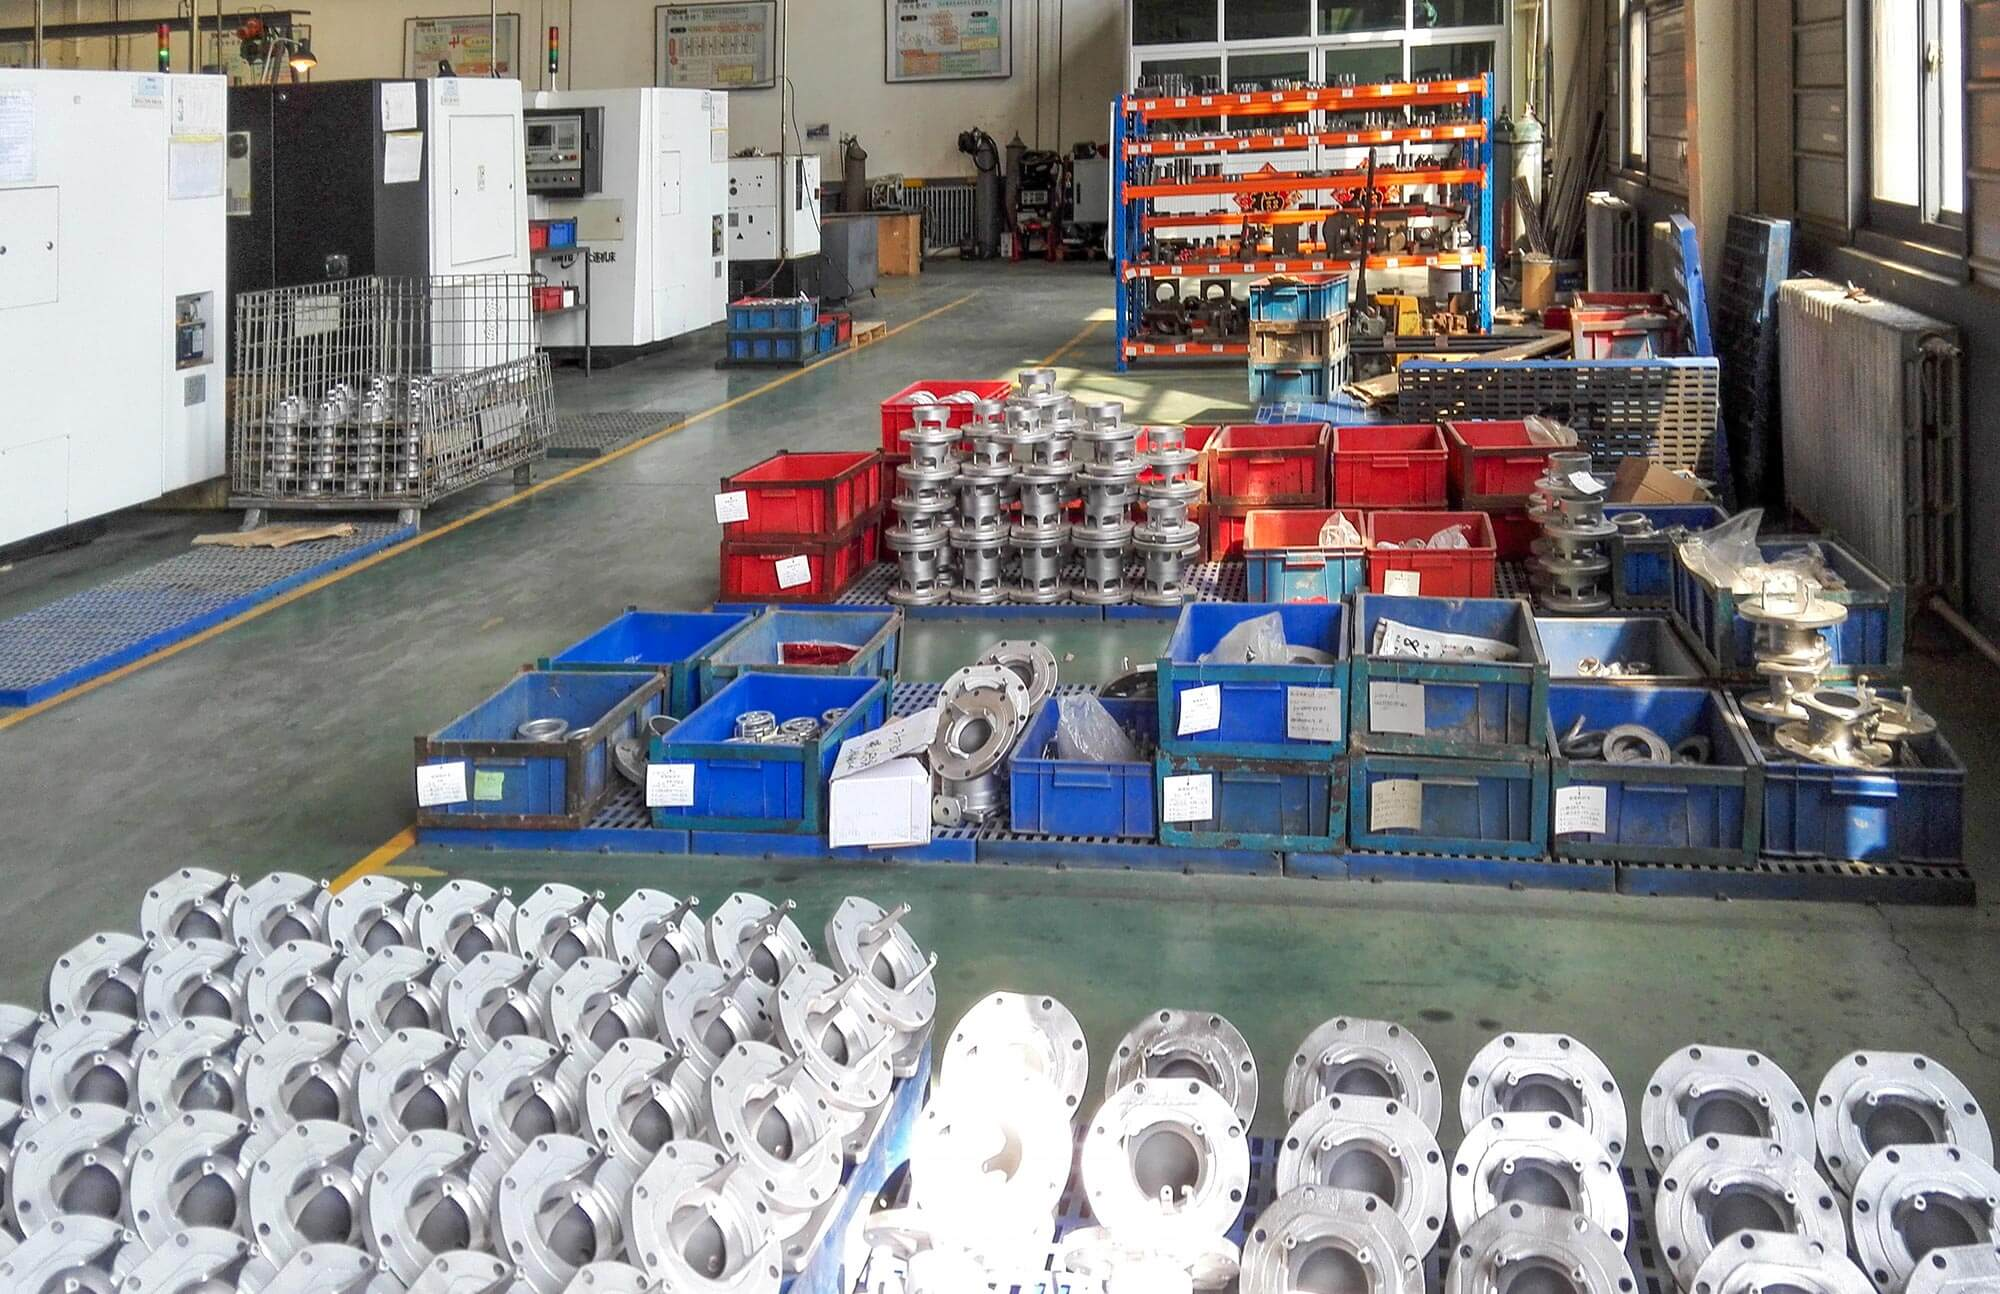 Cast-Stainless-Steel Pump-Parts